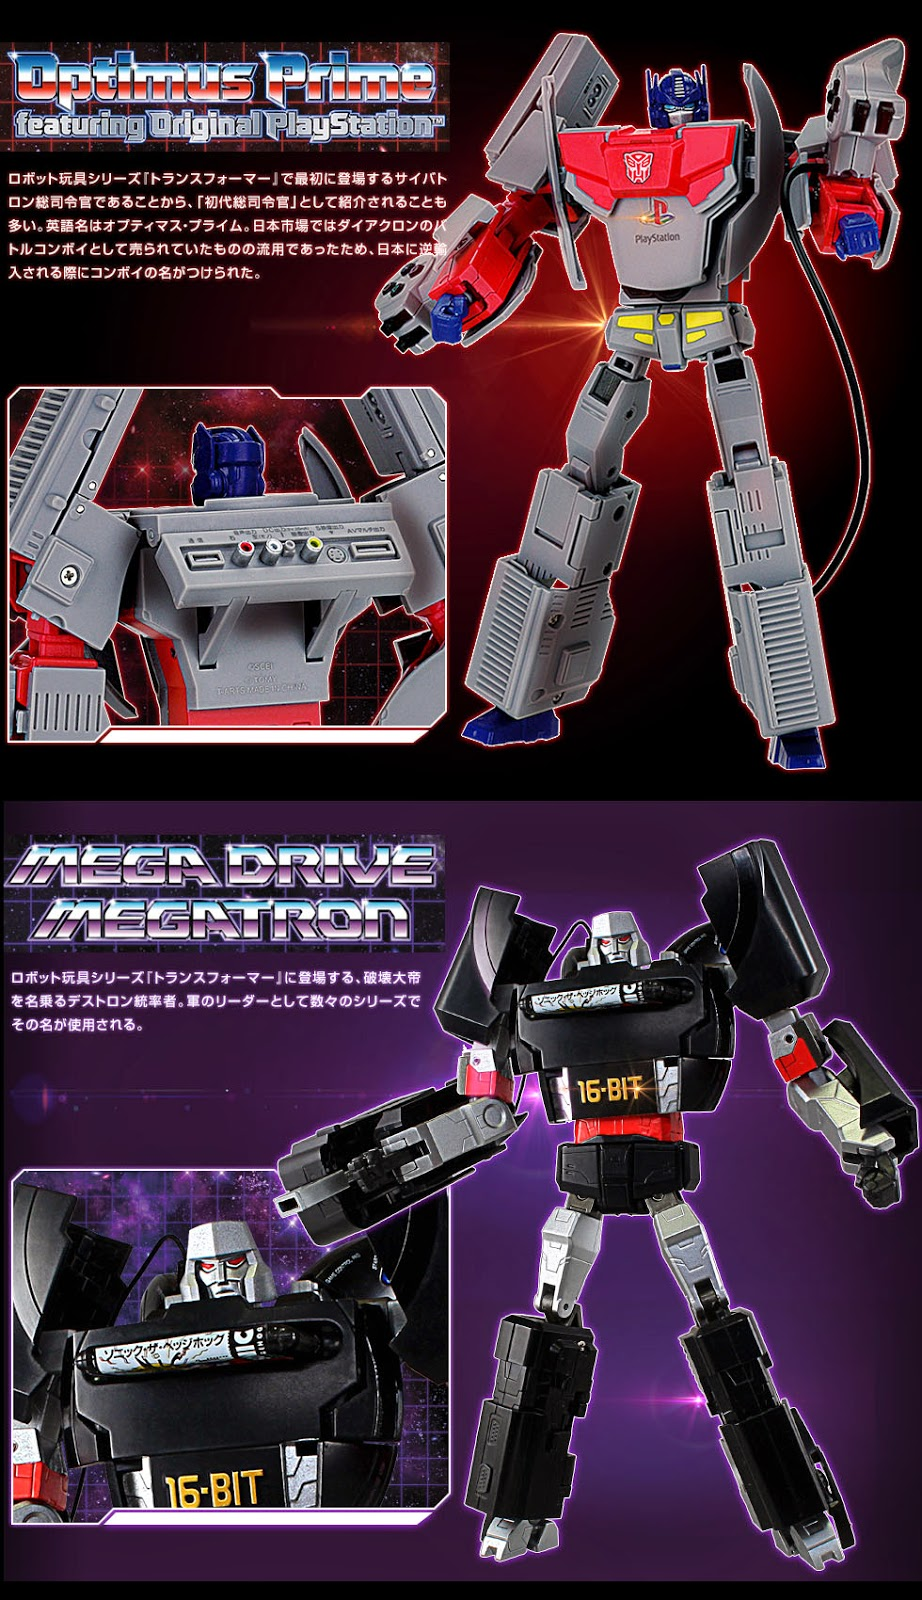 Transformers Optimus Prime PlayStation e Megatron Mega Drive recensione